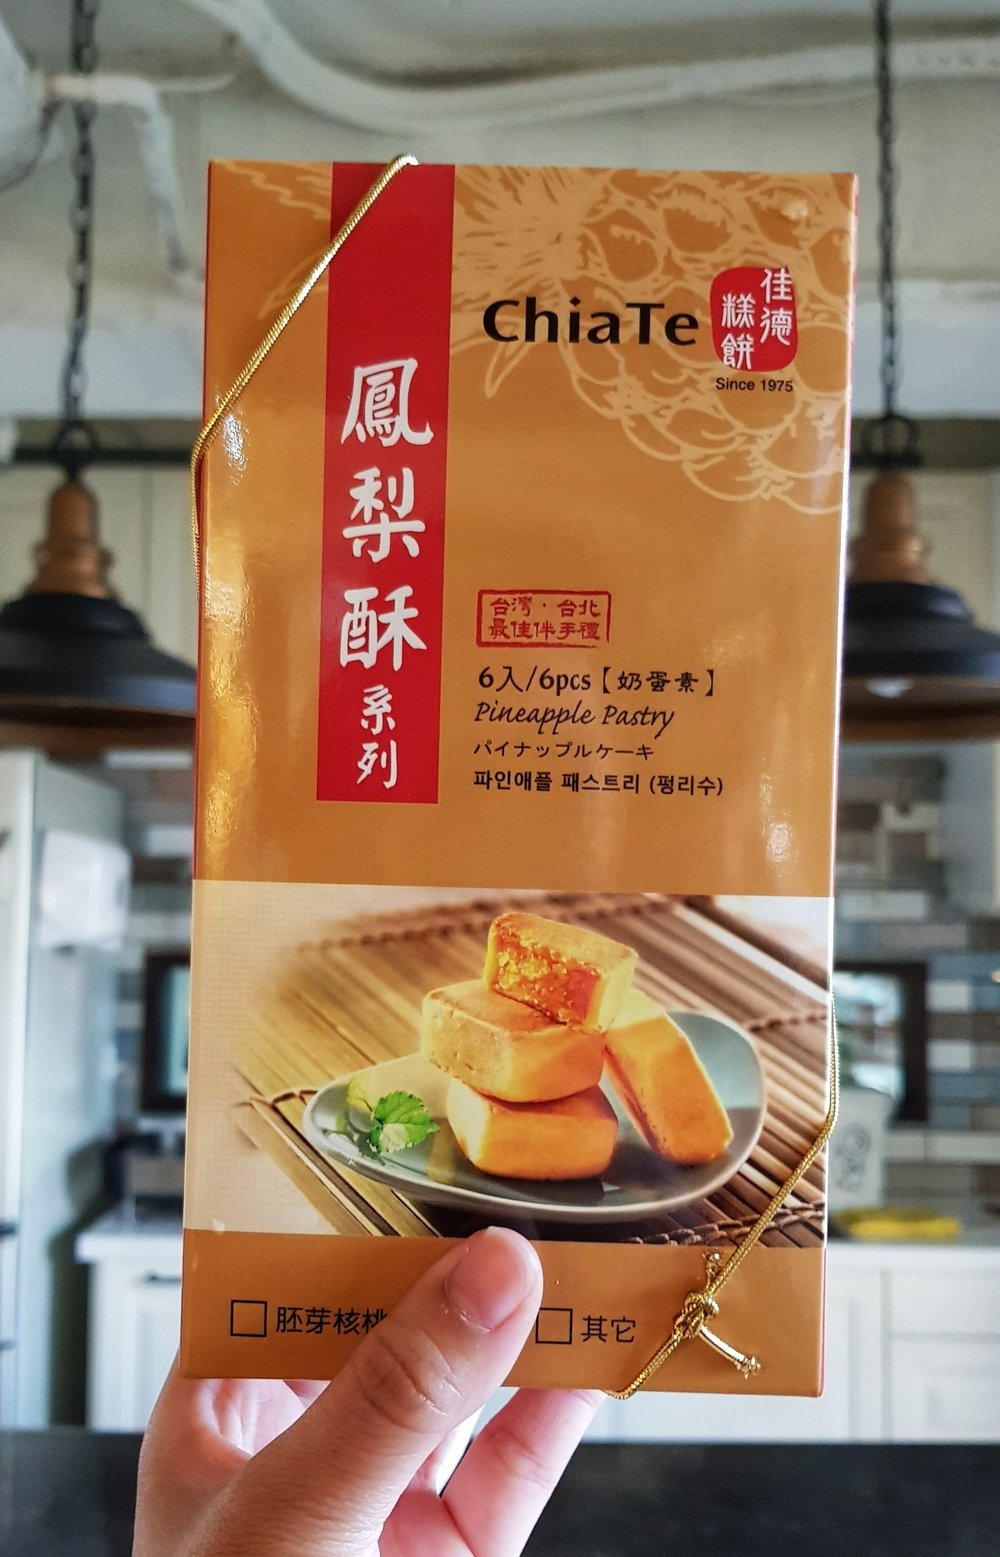 pineapple cake giftbox, Chia Te Bakery (เจียเต๋อ 佳德鳳梨酥) store, taipei, taiwan